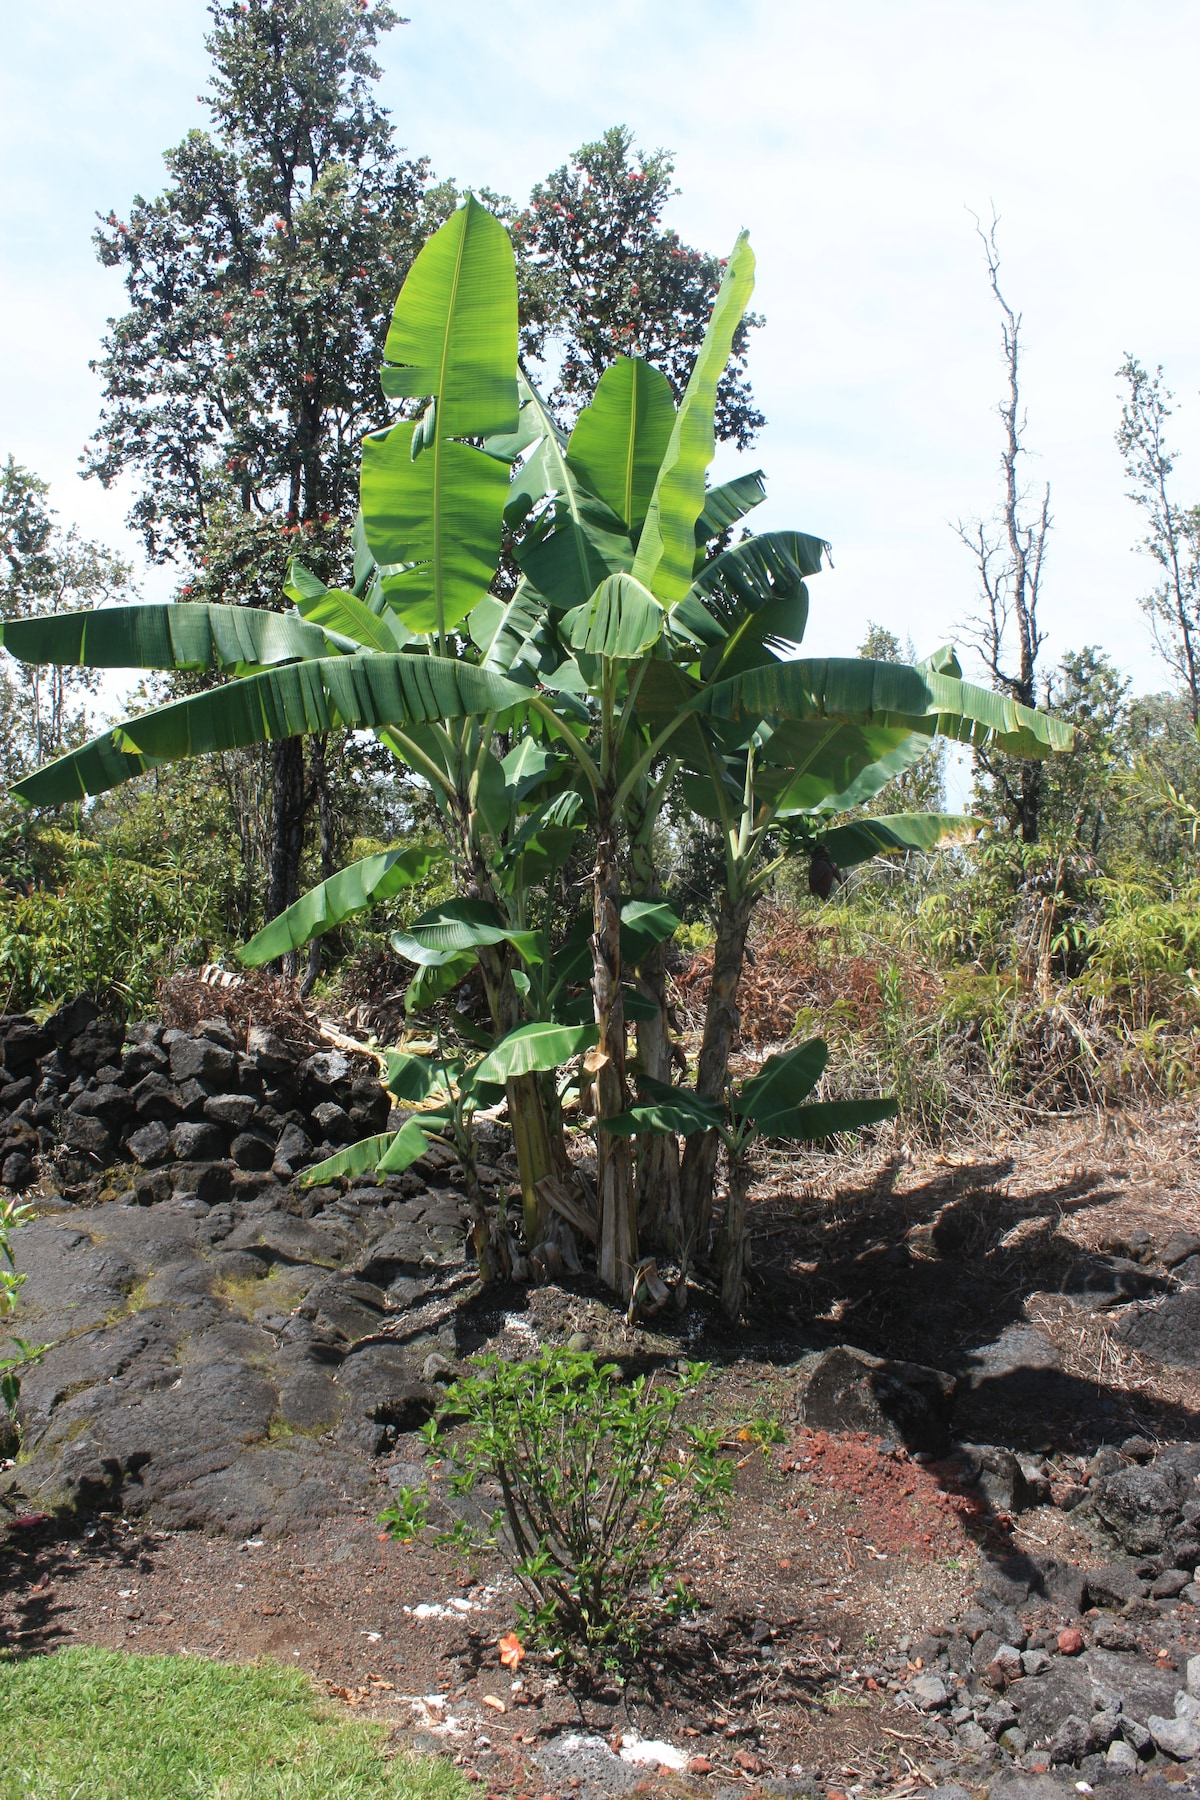 Our banana tree. No neighbors on this side of the property.